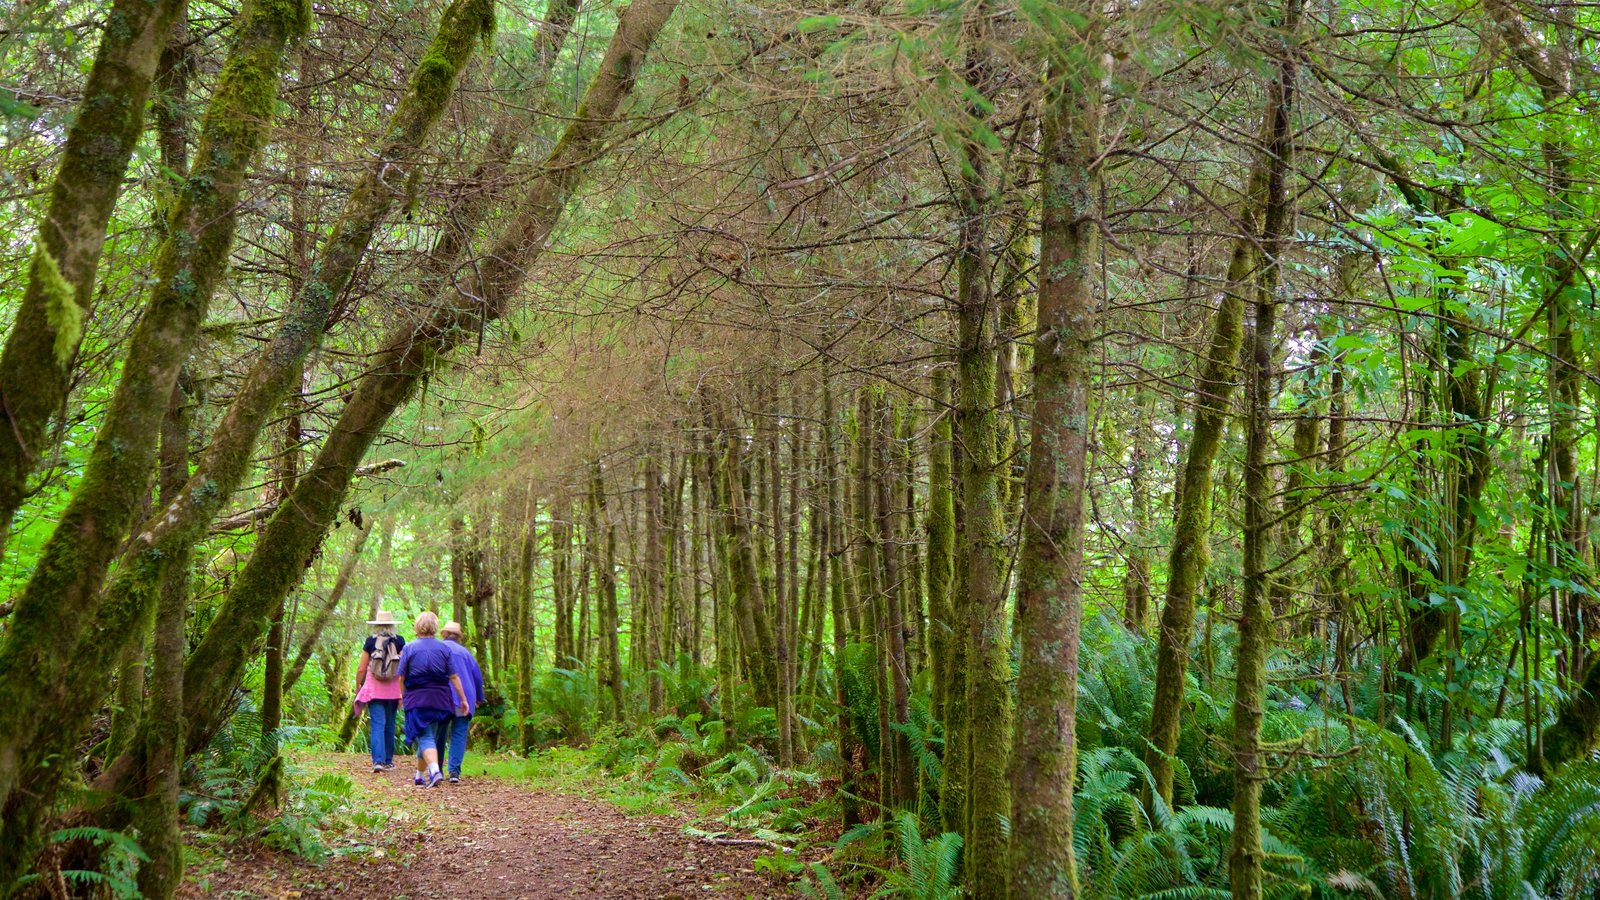 Redwood National and State Parks which includes rainforest and hiking or walking as well as a small group of people